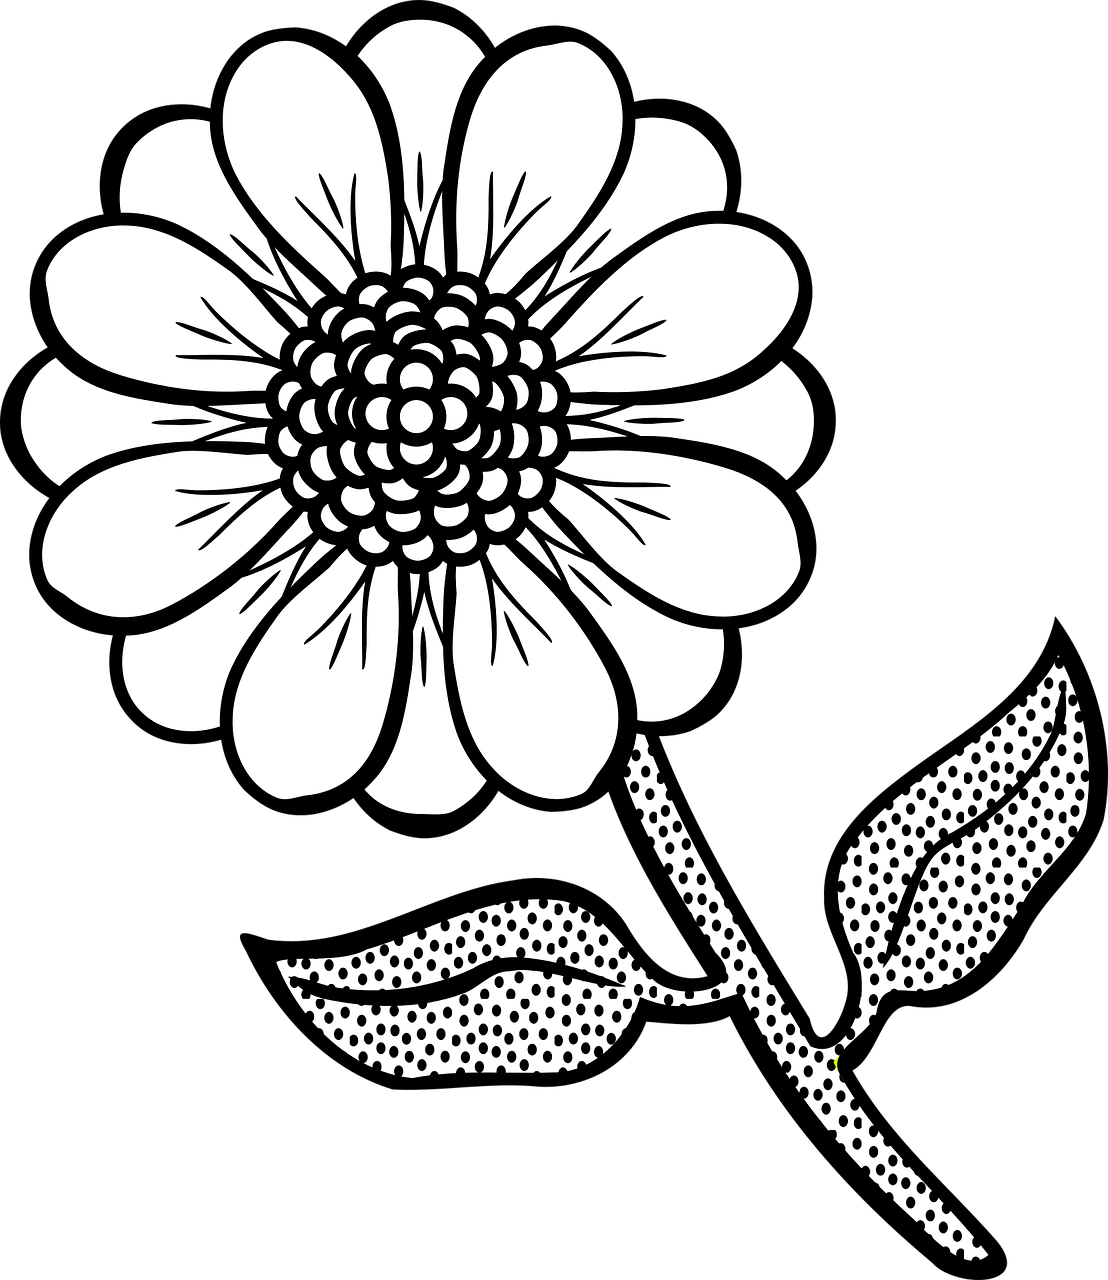 picture of a flower to color flowers coloring pages coloringpages1001com of flower picture a to color